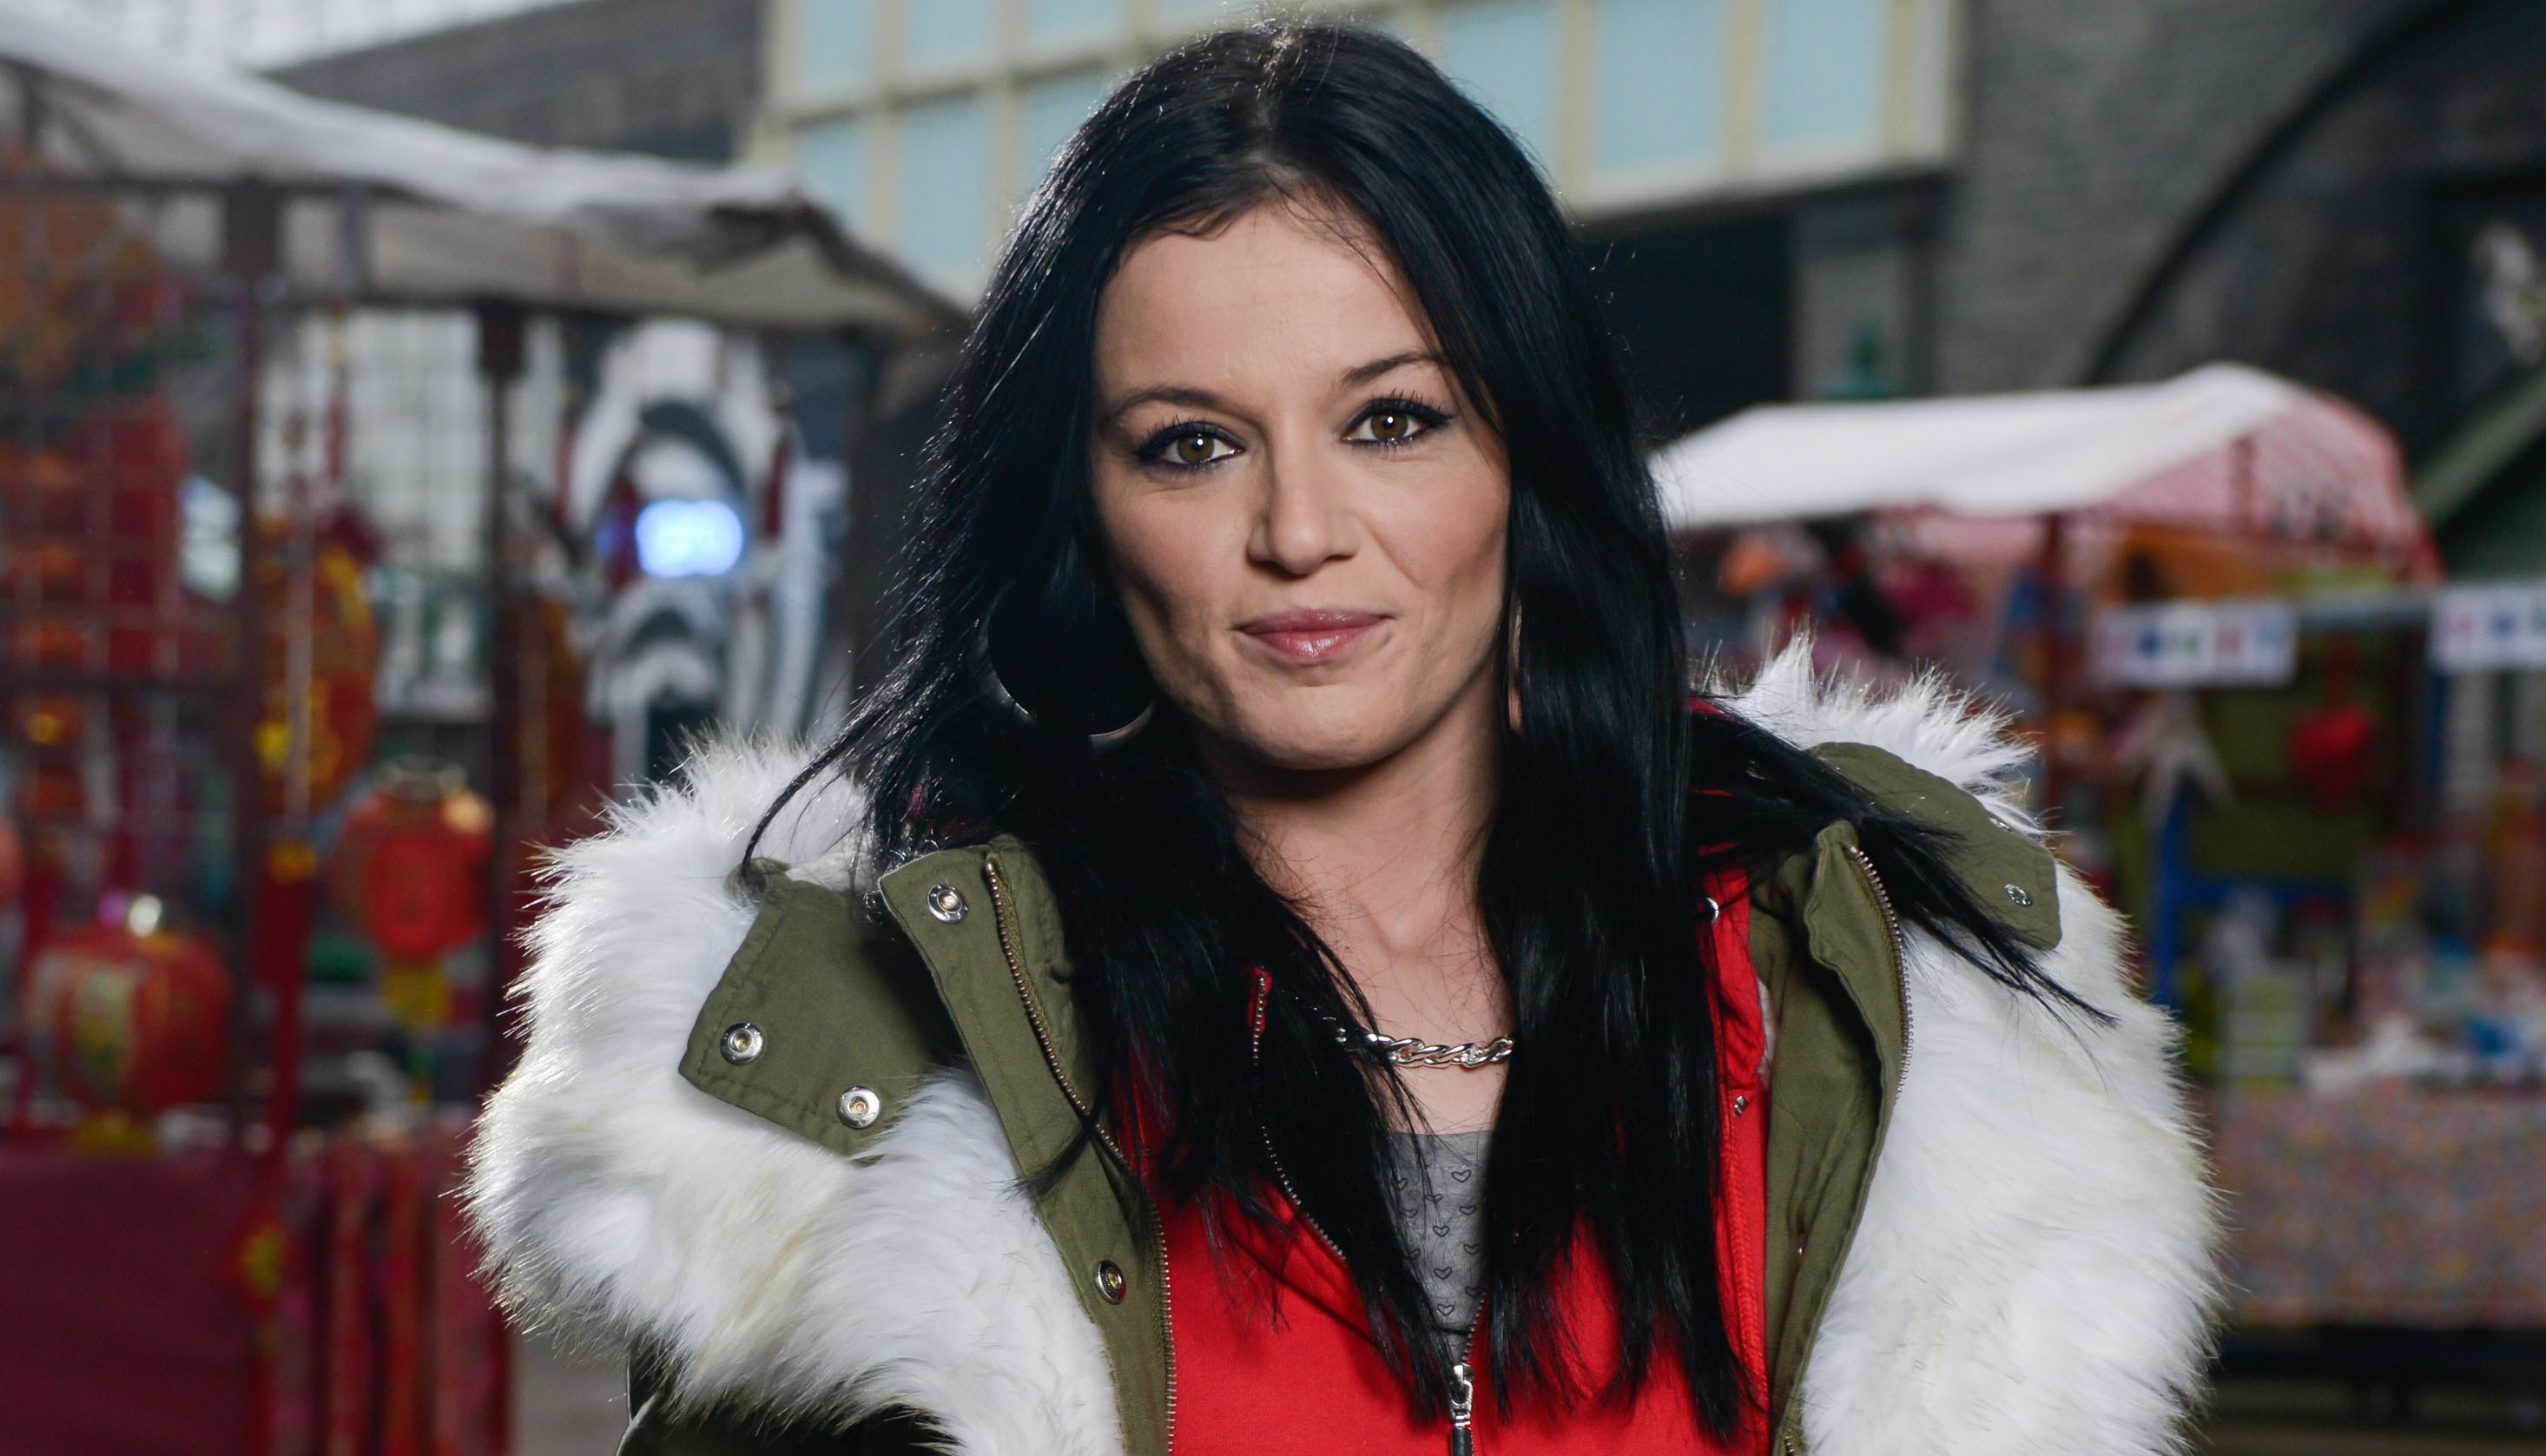 EastEnders spoilers: Hayley is confirmed as a Slater who is working with Stacey Fowler